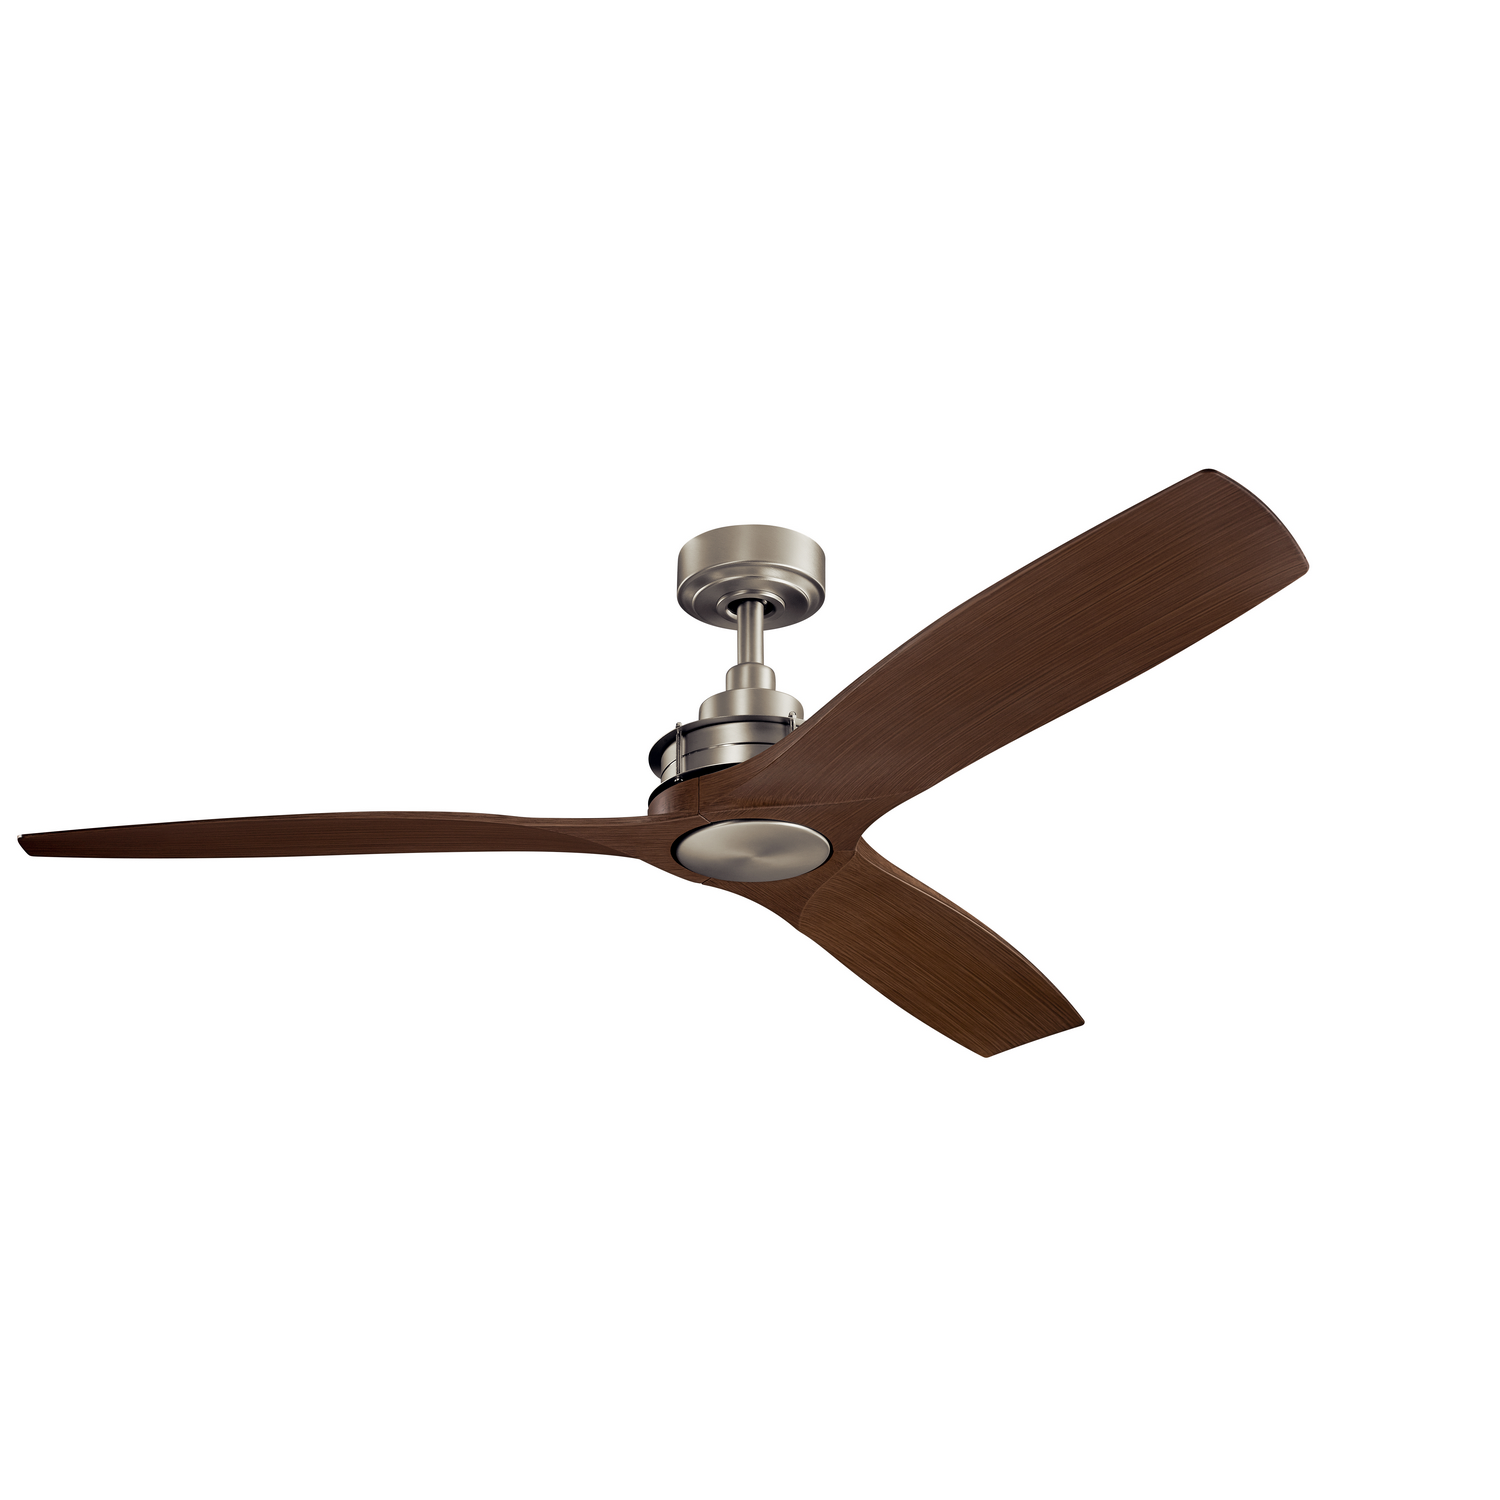 56 inchCeiling Fan from the Ried collection by Kichler 300356NI